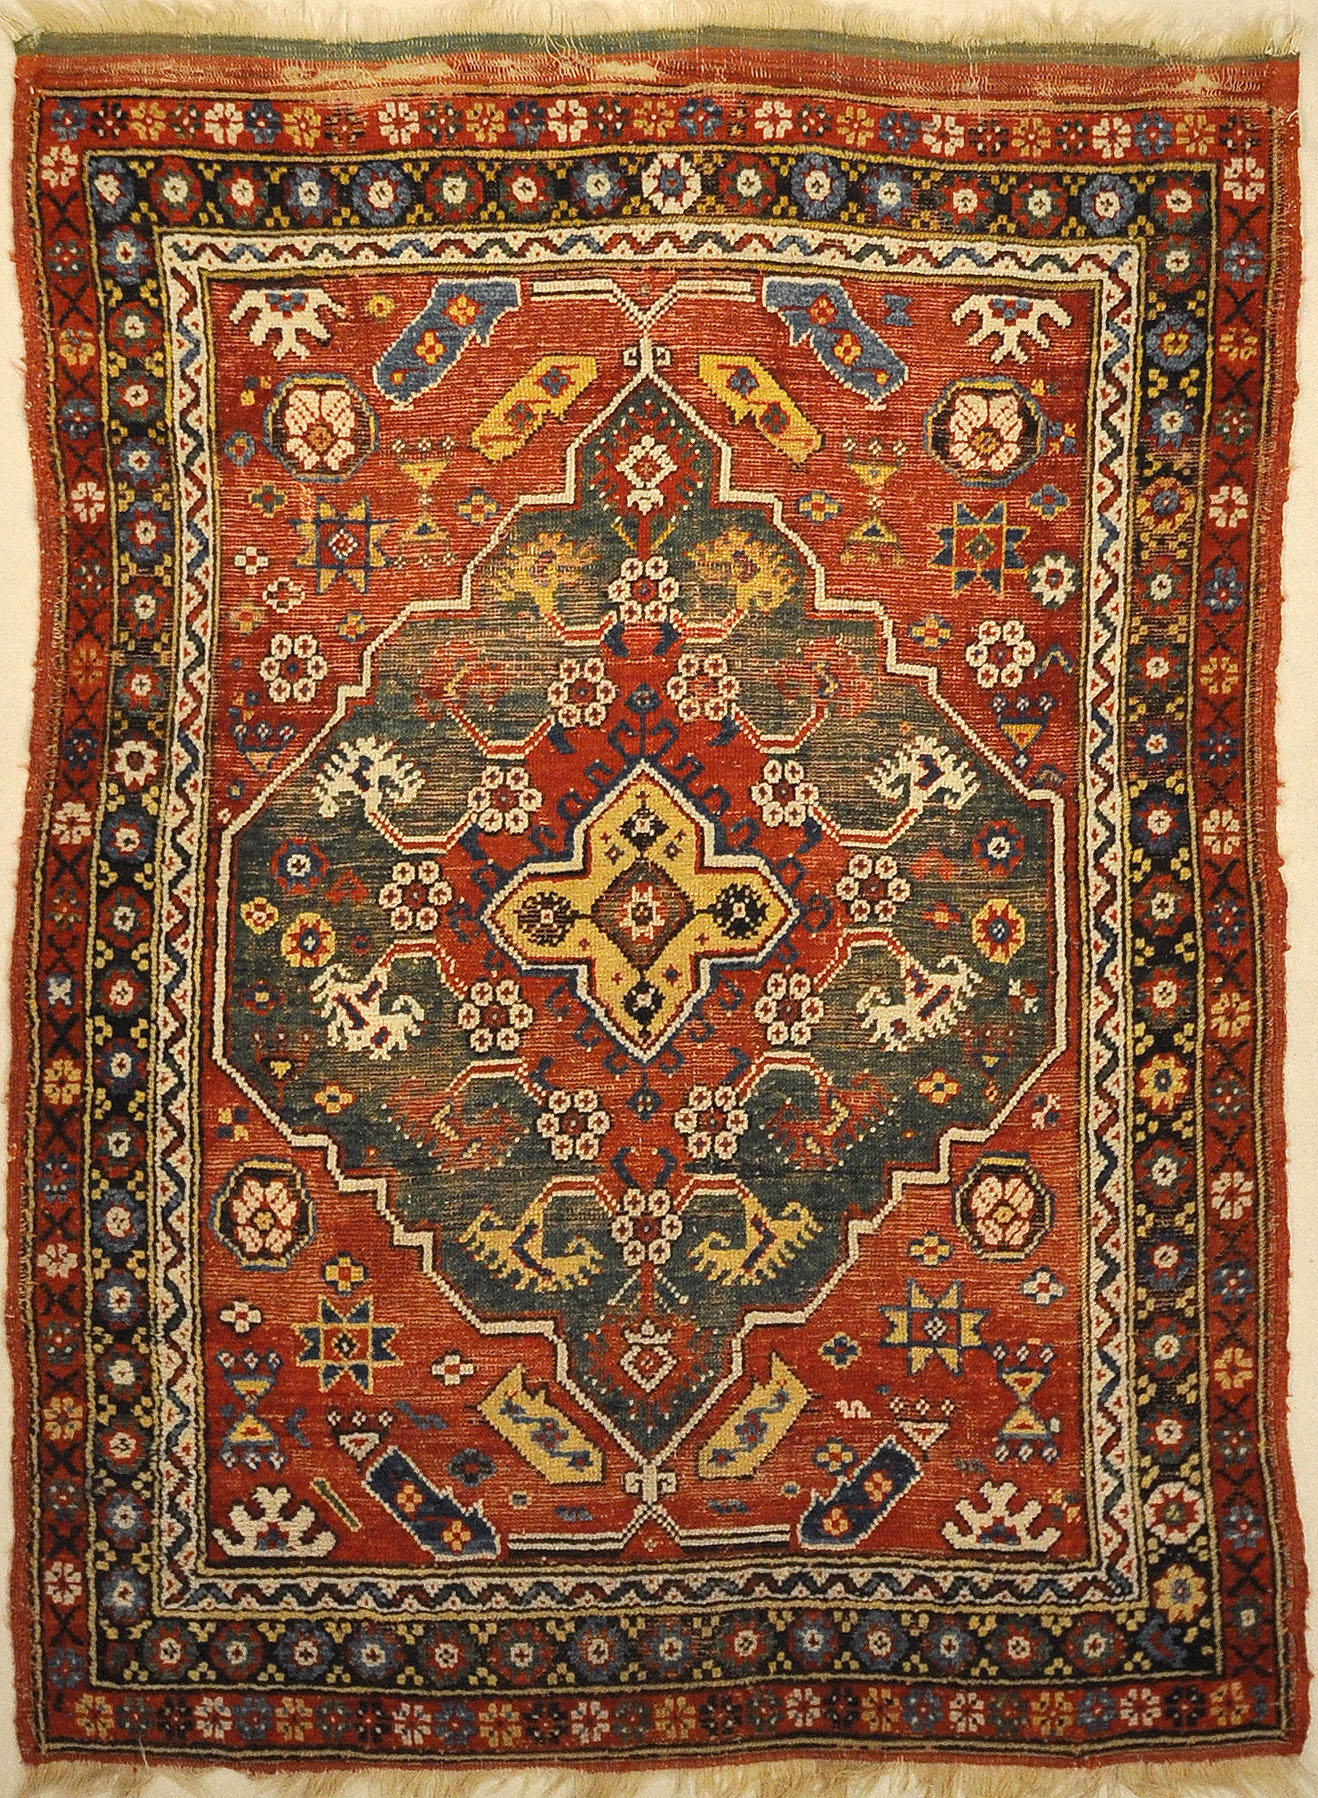 Antique Turkish Bergama Rug. A piece of genuine woven carpet art sold by the Santa Barbara Design Center and Rugs and More.